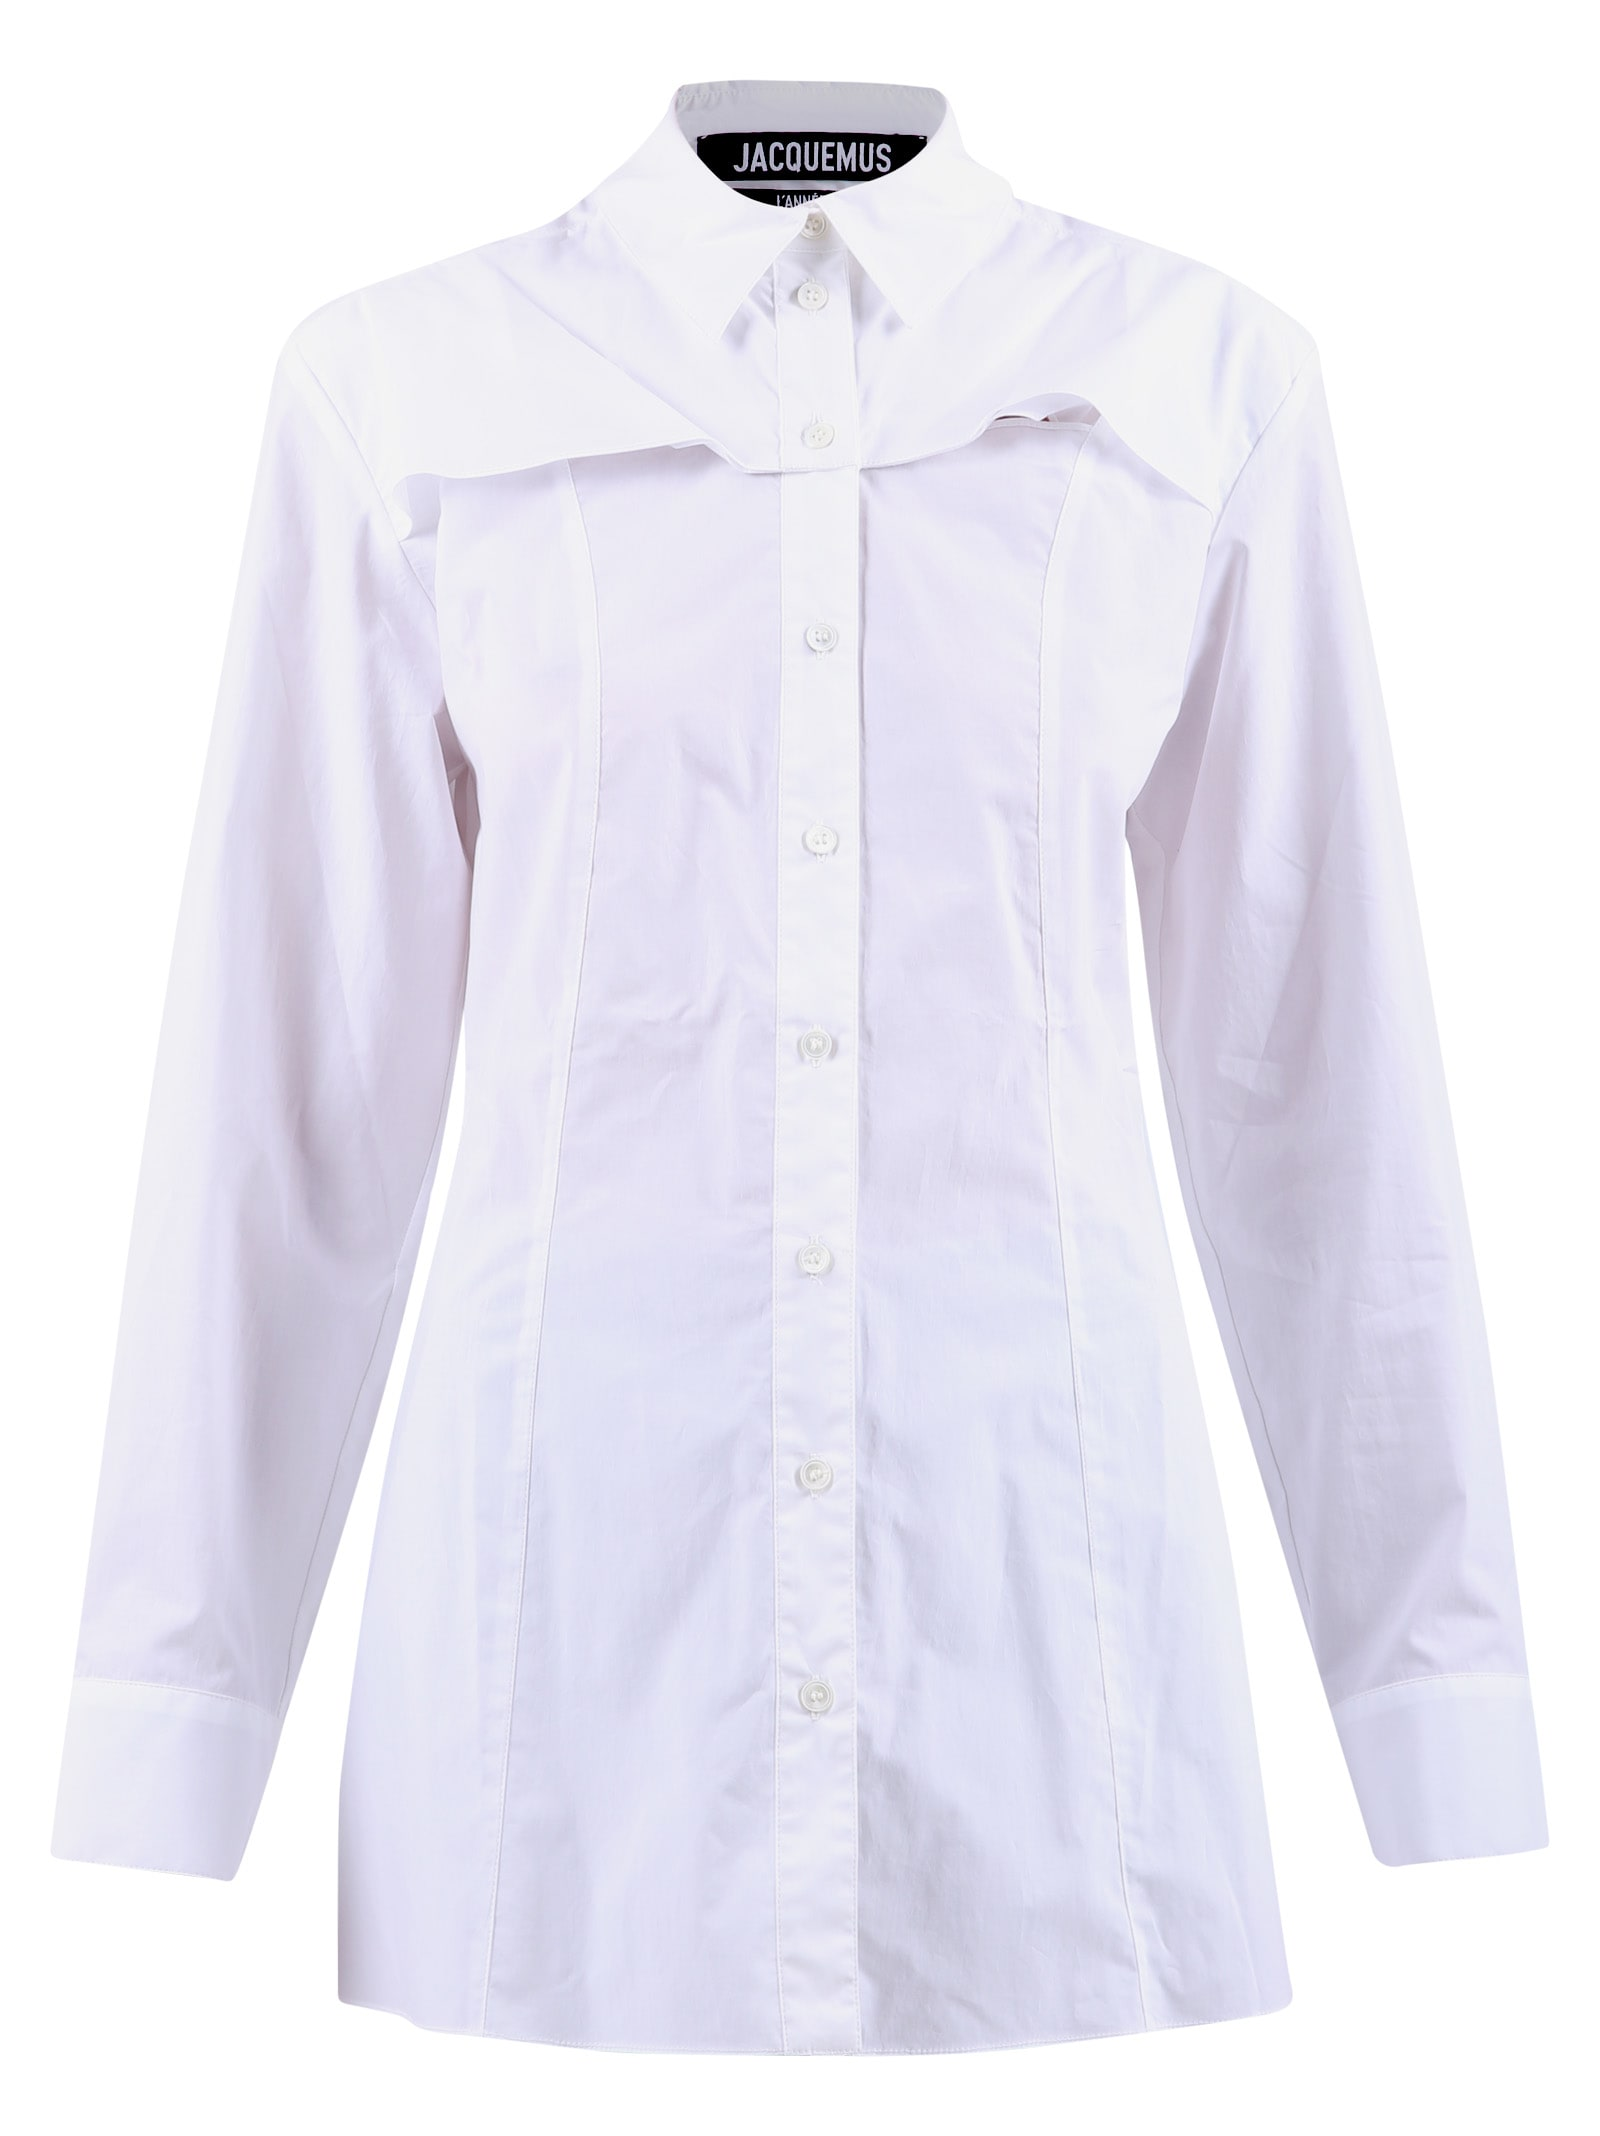 Jacquemus Slim Fit Shirt